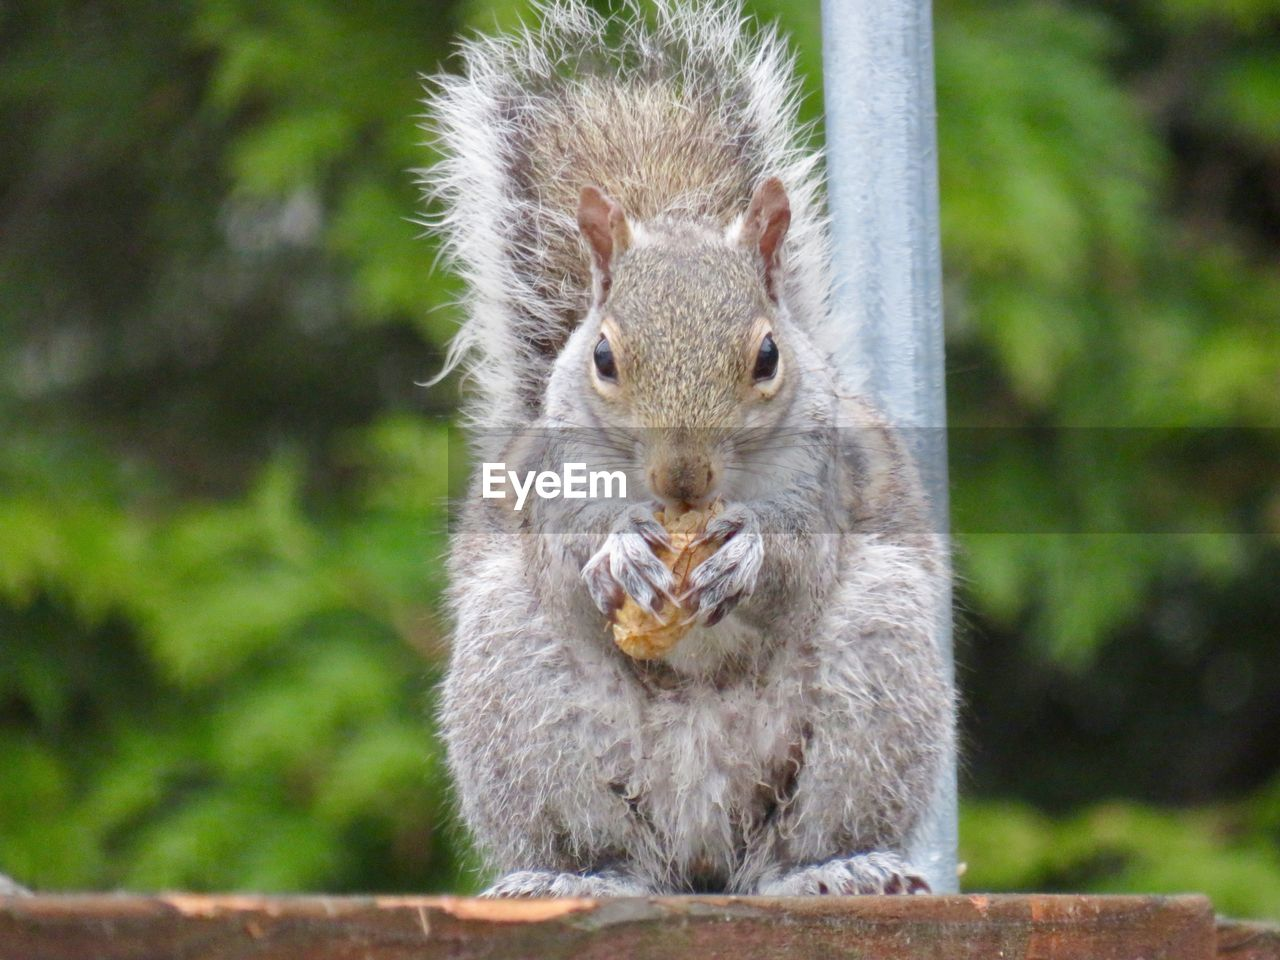 animal wildlife, animals in the wild, one animal, mammal, rodent, focus on foreground, squirrel, day, no people, eating, food, close-up, vertebrate, food and drink, outdoors, nature, portrait, whisker